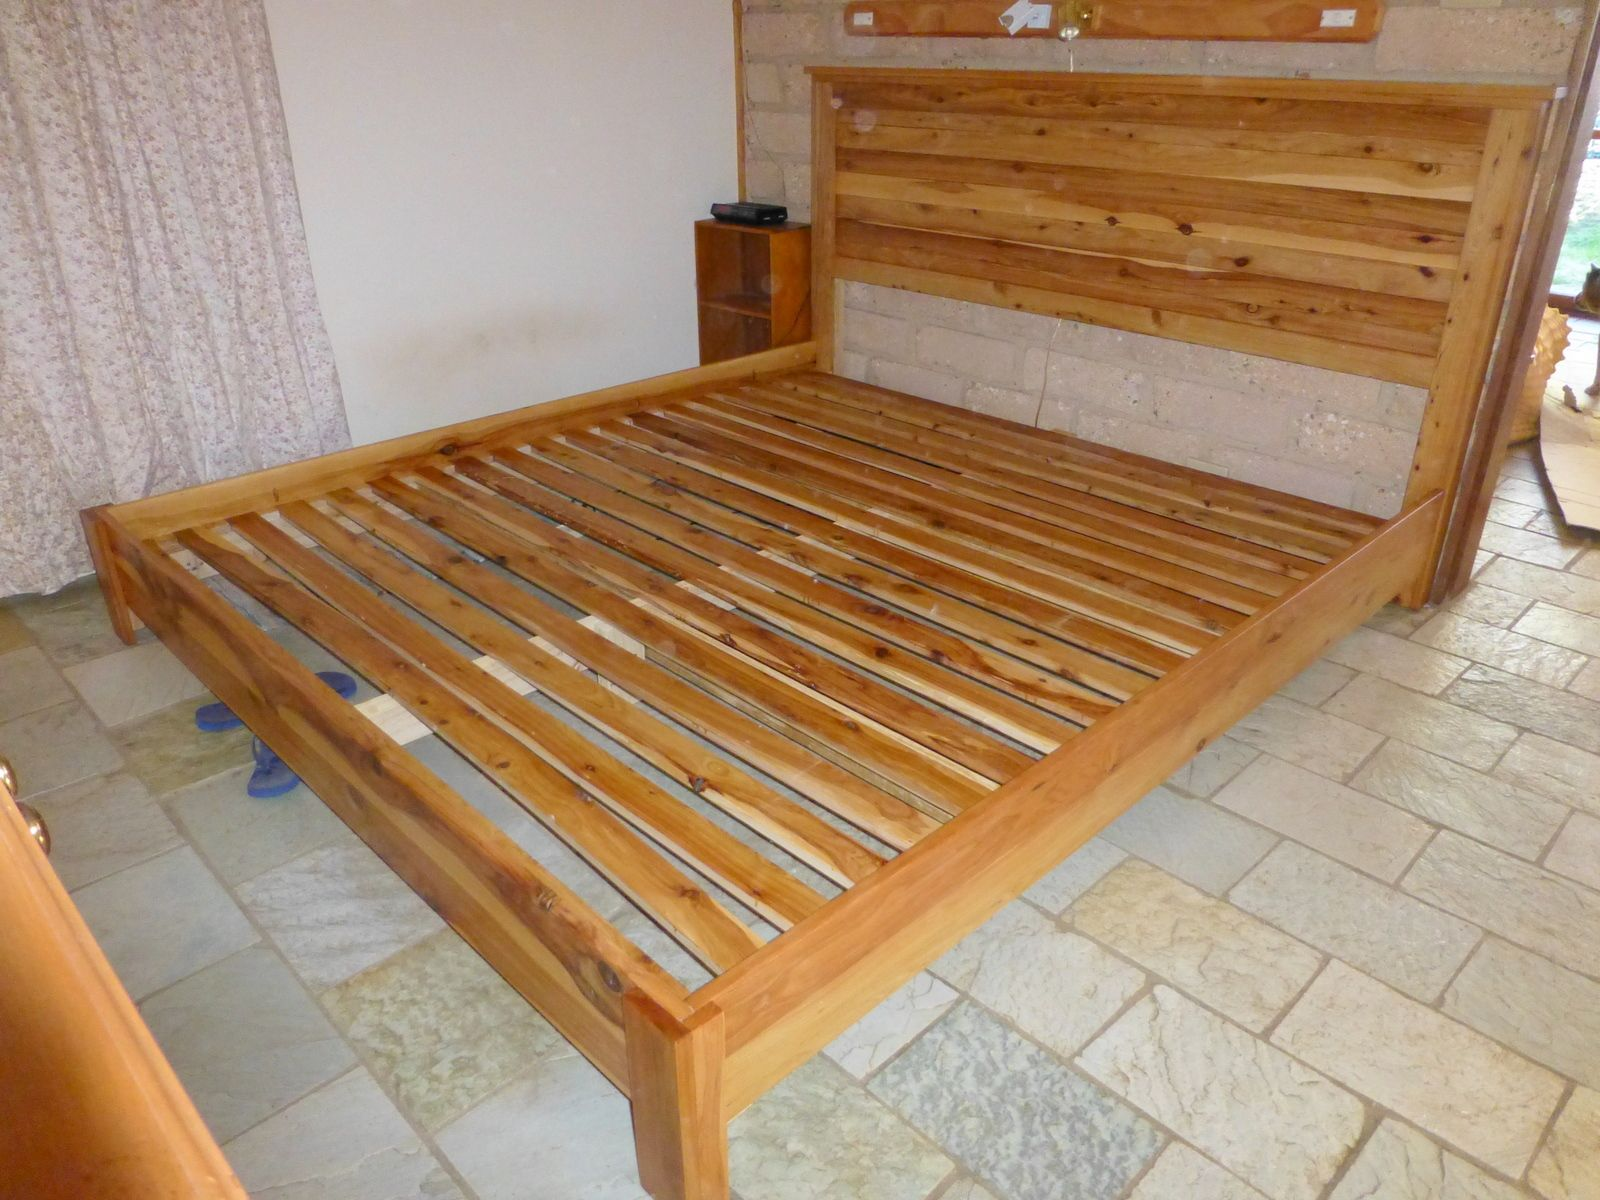 Plans for building a king size platform bed - Diy King Size Bed Plans King Size Bed With Reclaimed Headboard